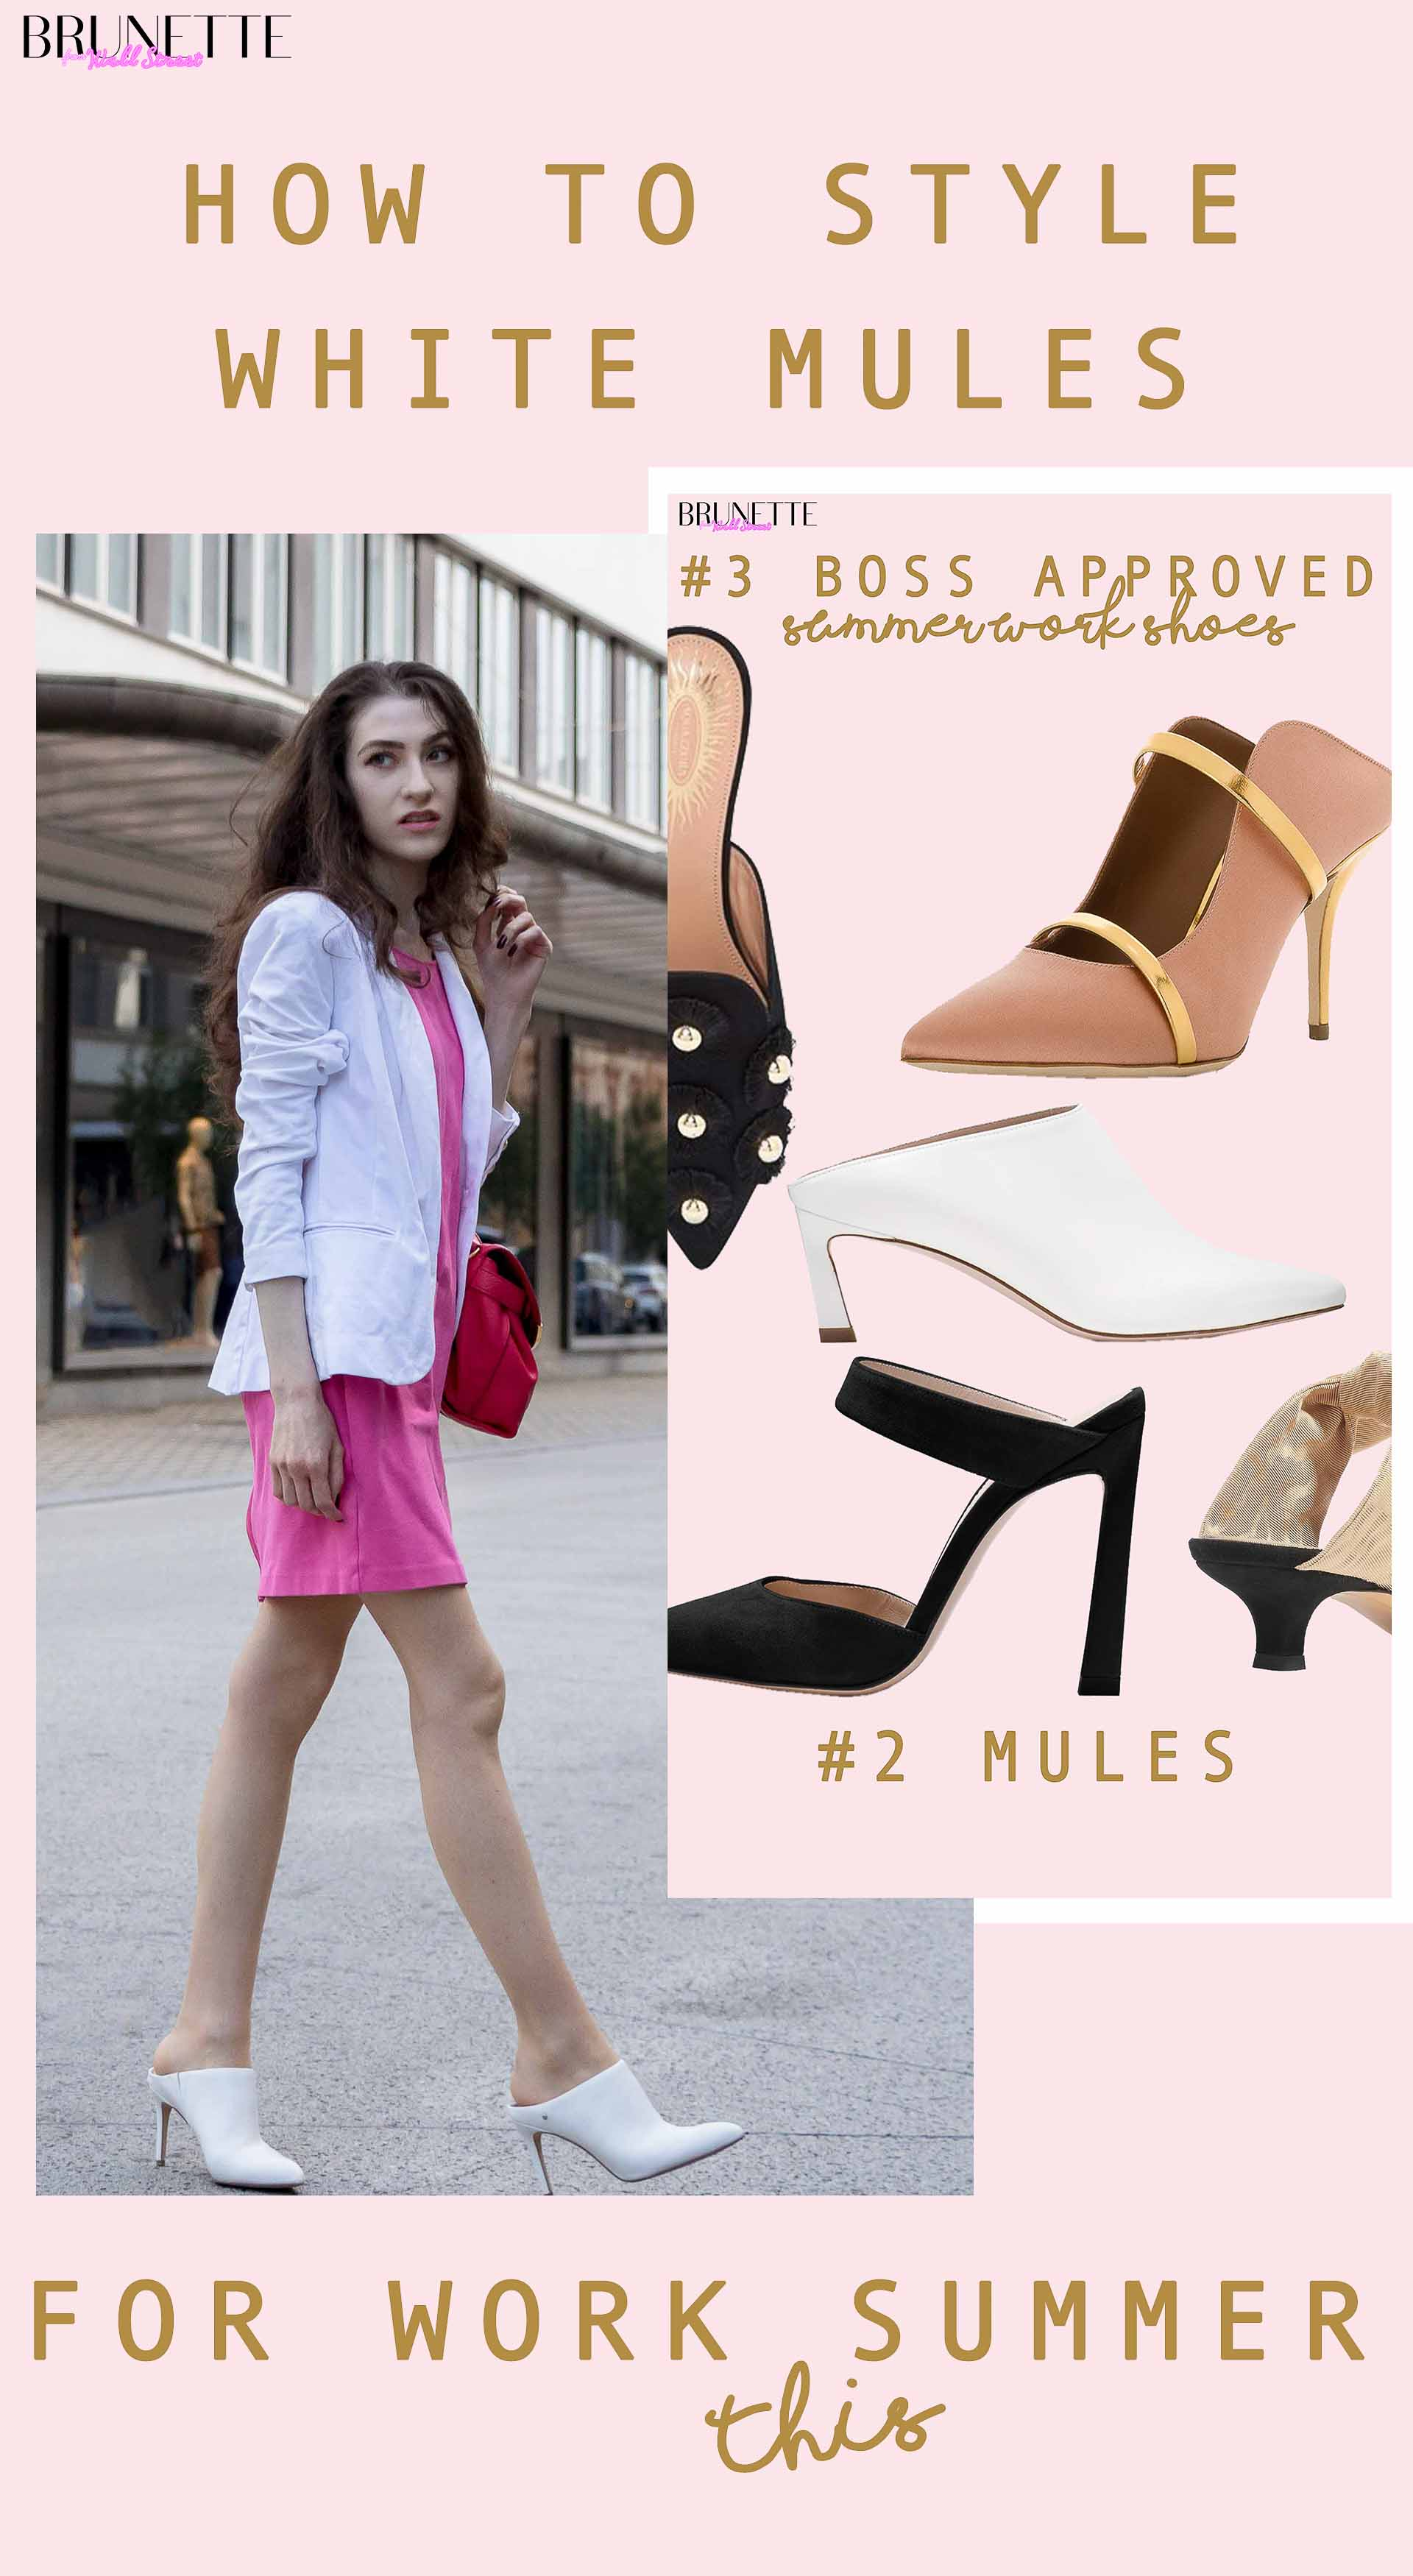 How to style white mules for work this summer